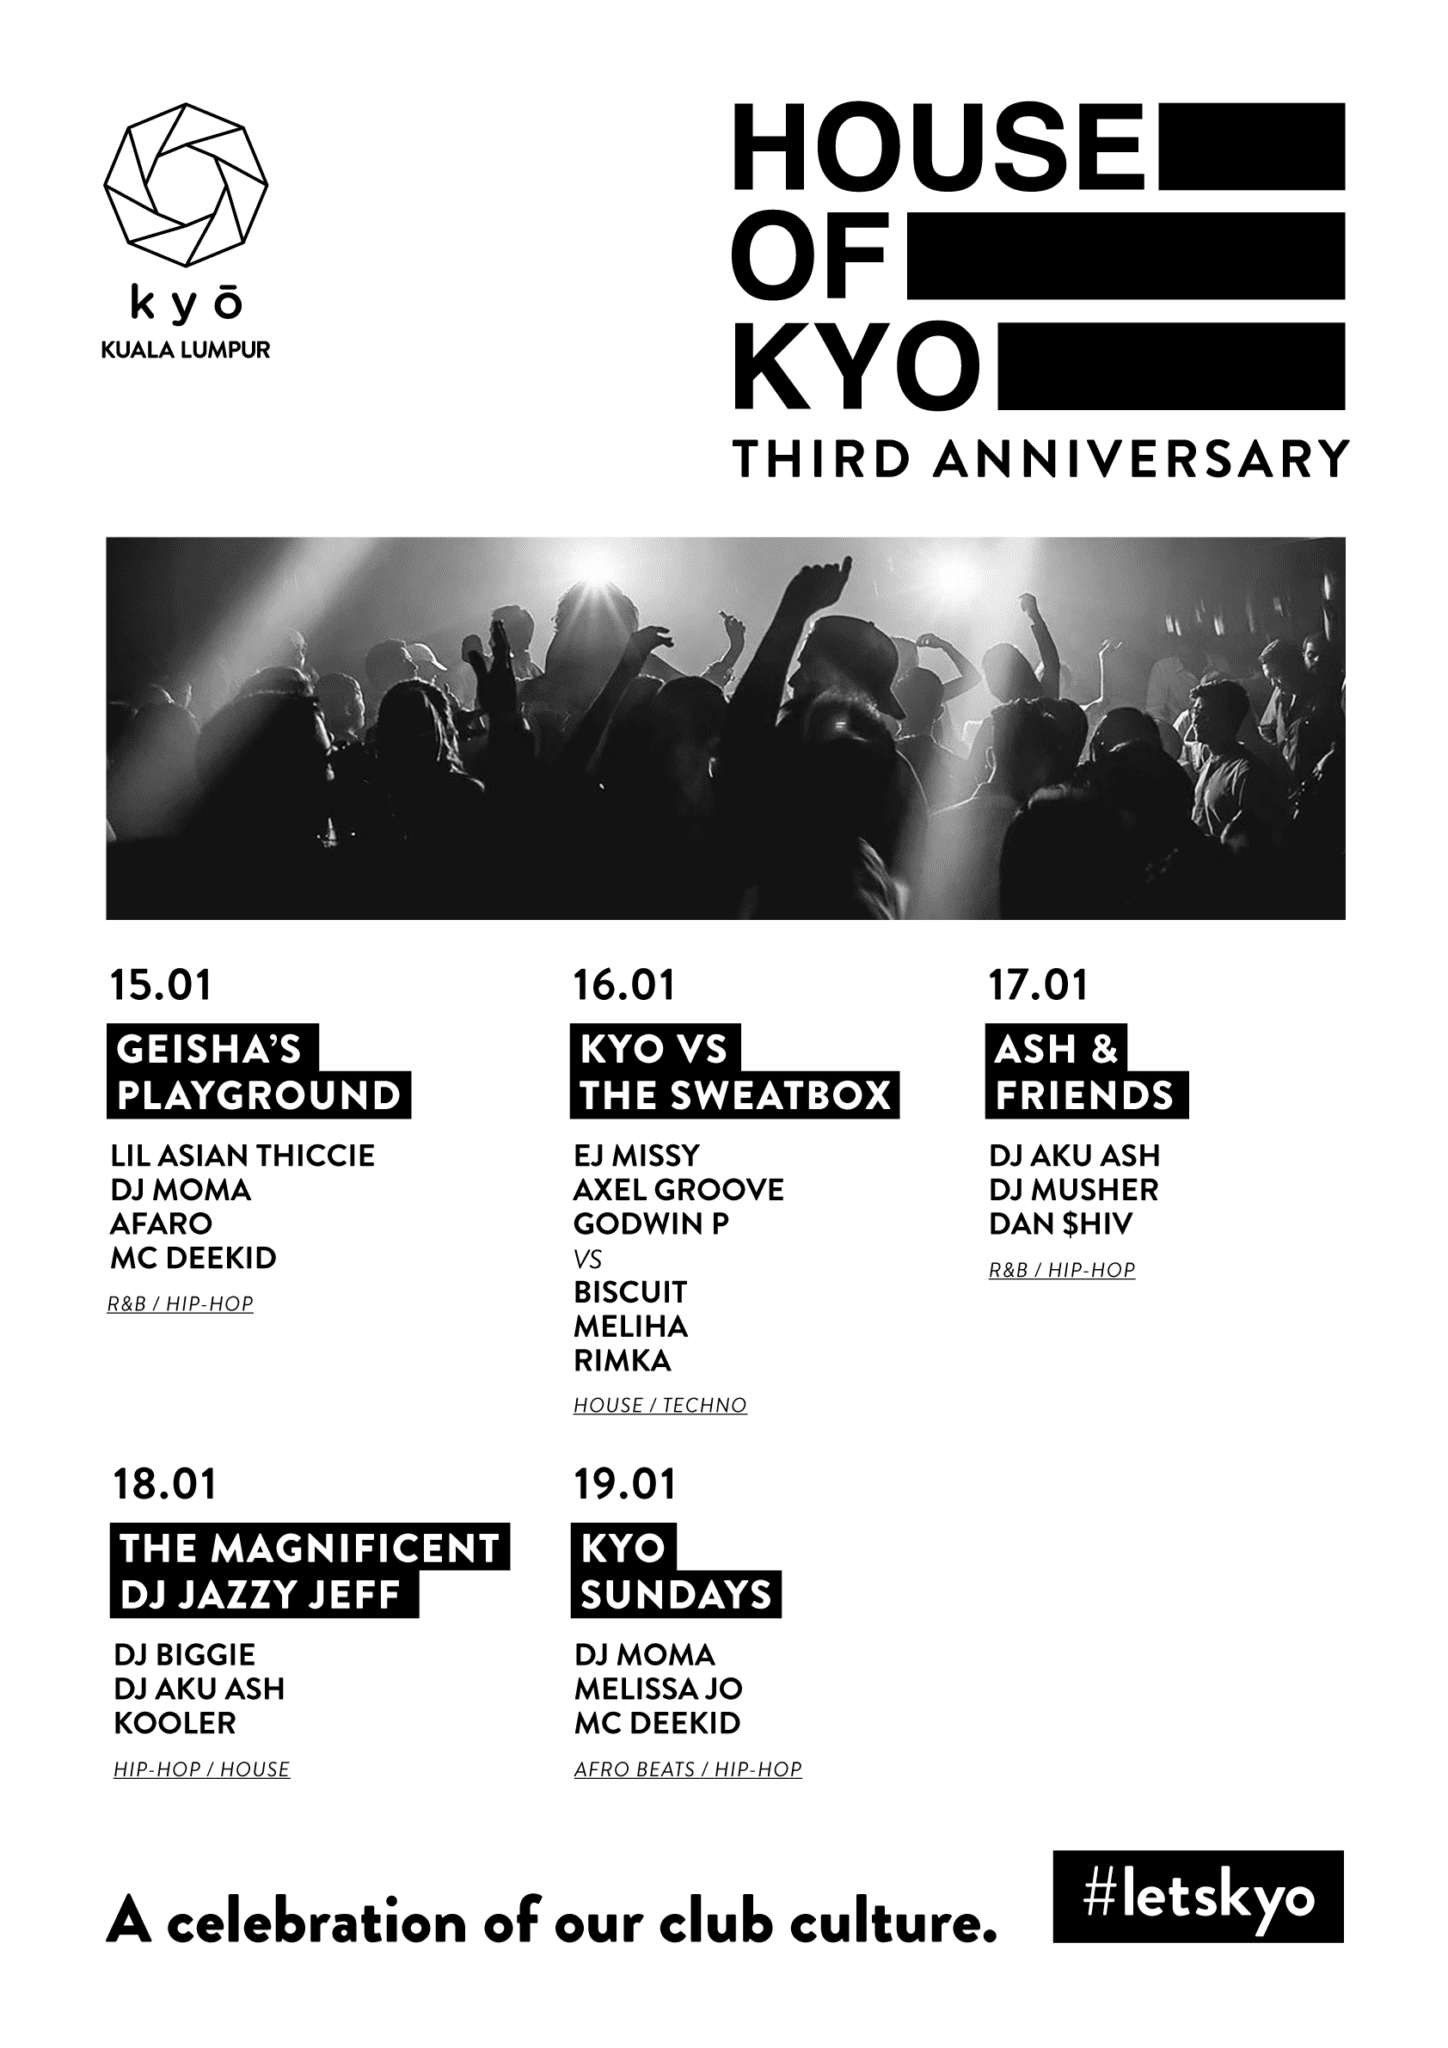 Kyo Kuala Lumpur Turns 3 with week of celebrations including big party with Jazzy Jeff